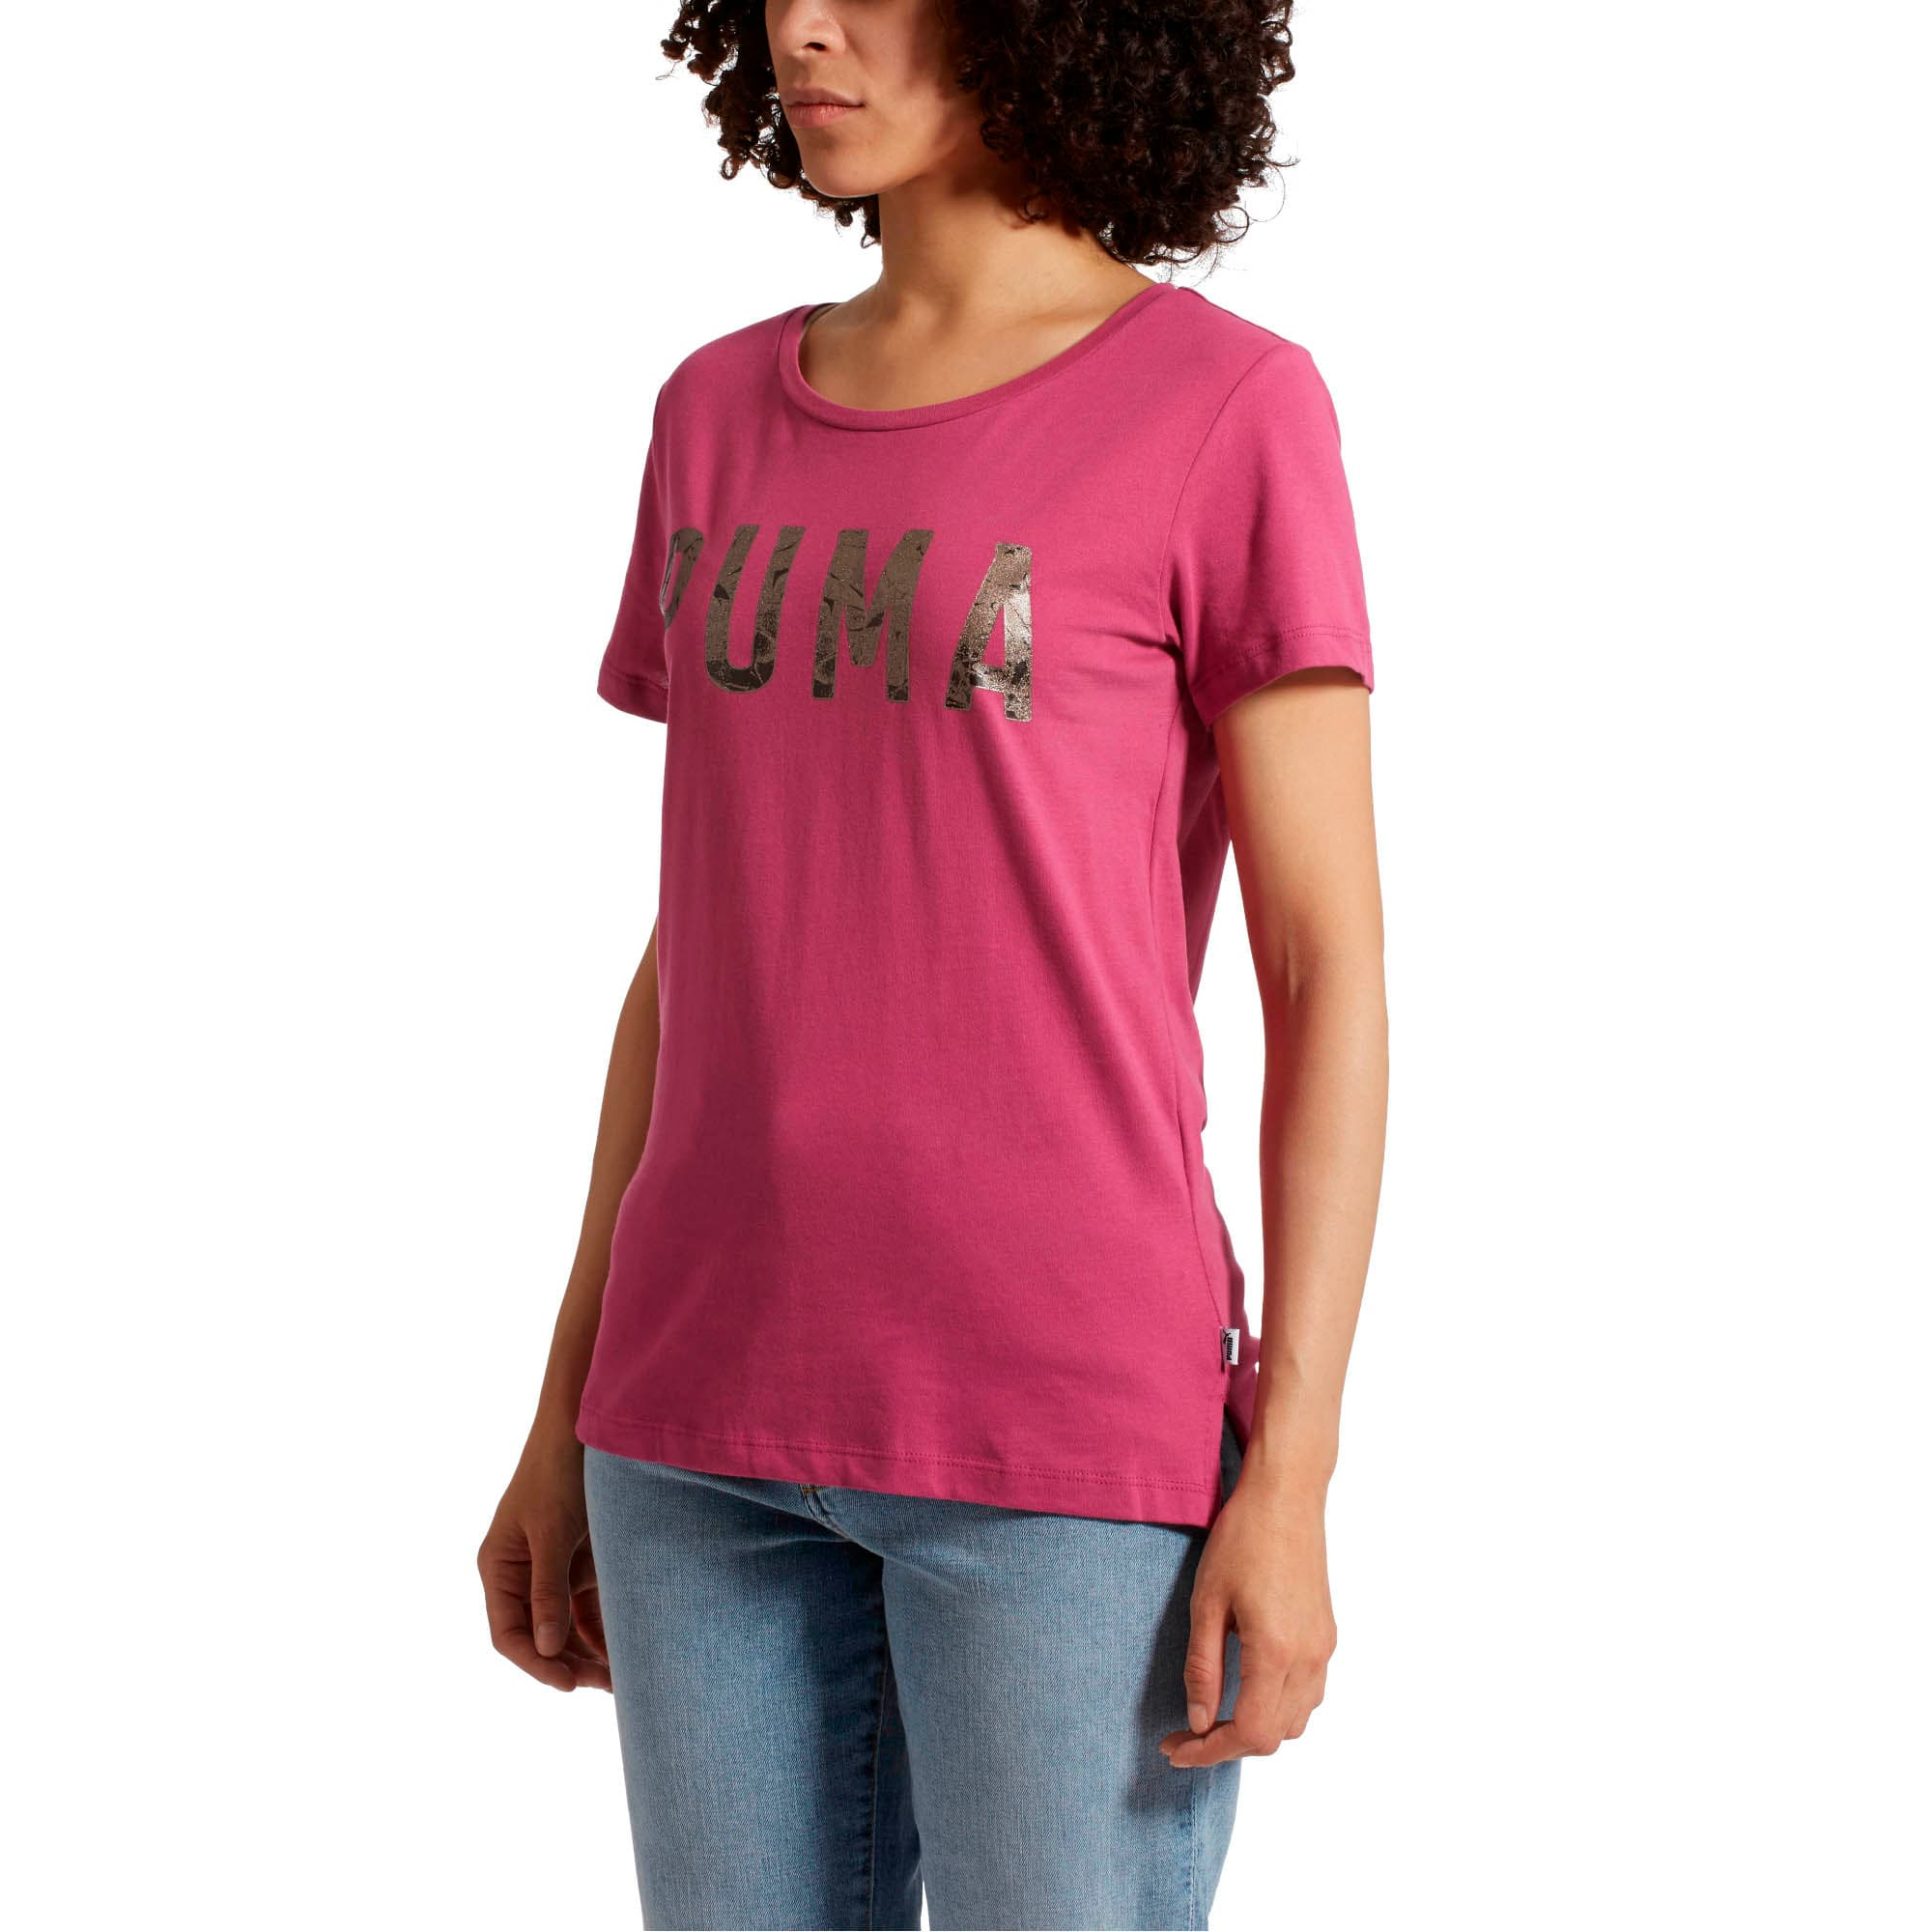 Thumbnail 2 of Athletic Women's Tee, Magenta Haze-Metalic Ash, medium